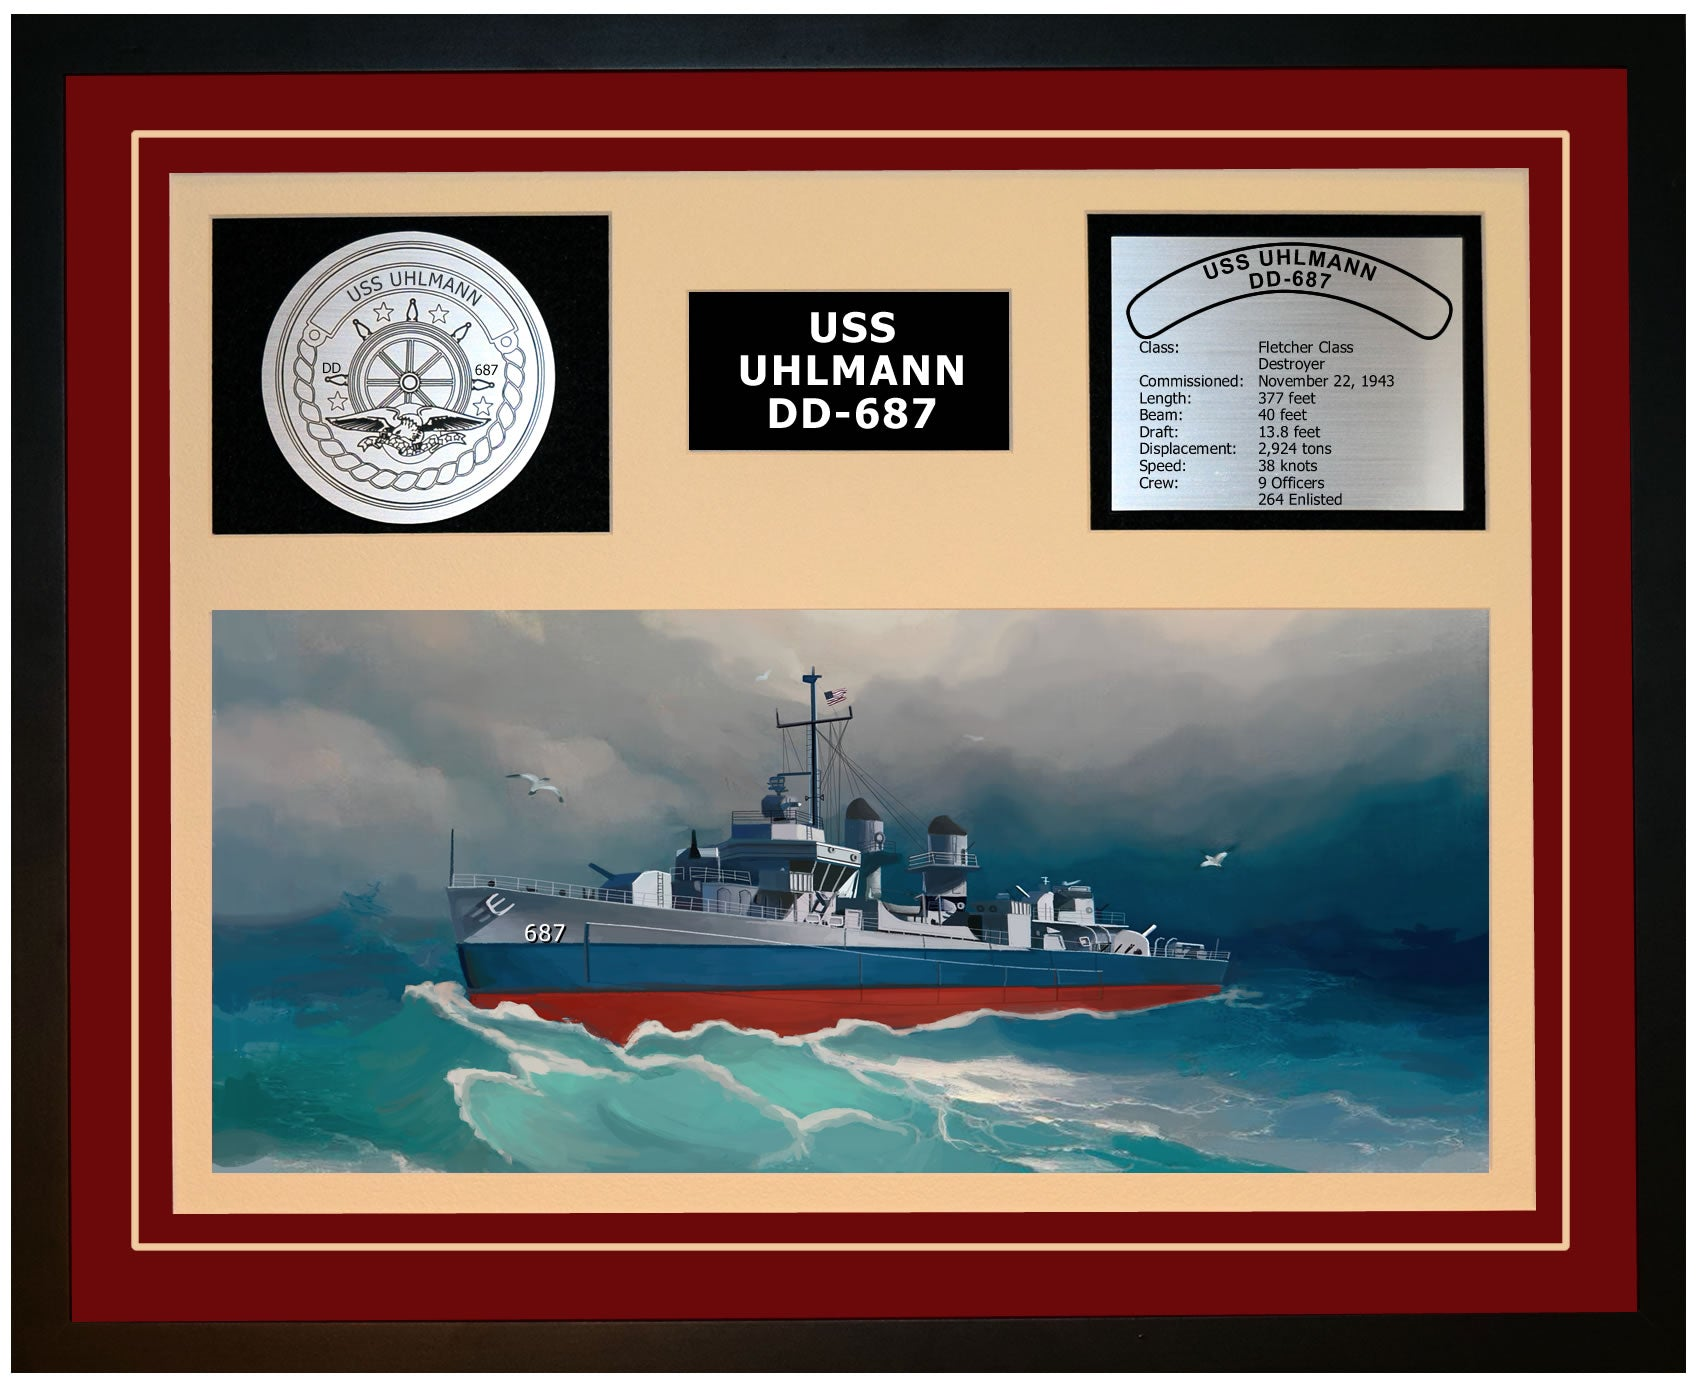 USS UHLMANN DD-687 Framed Navy Ship Display Burgundy